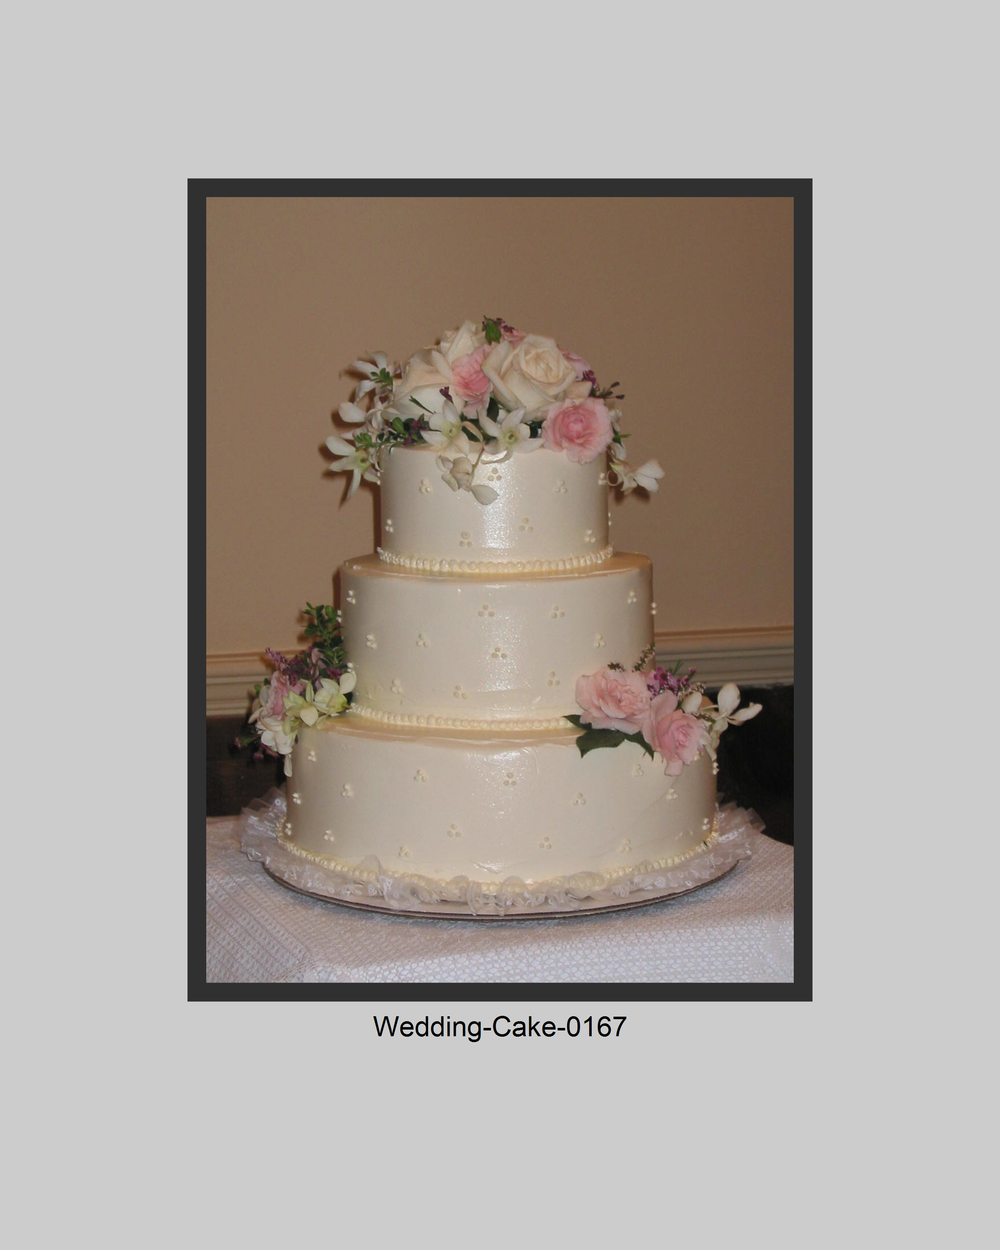 Wedding-Cake-Prints-0167.jpg